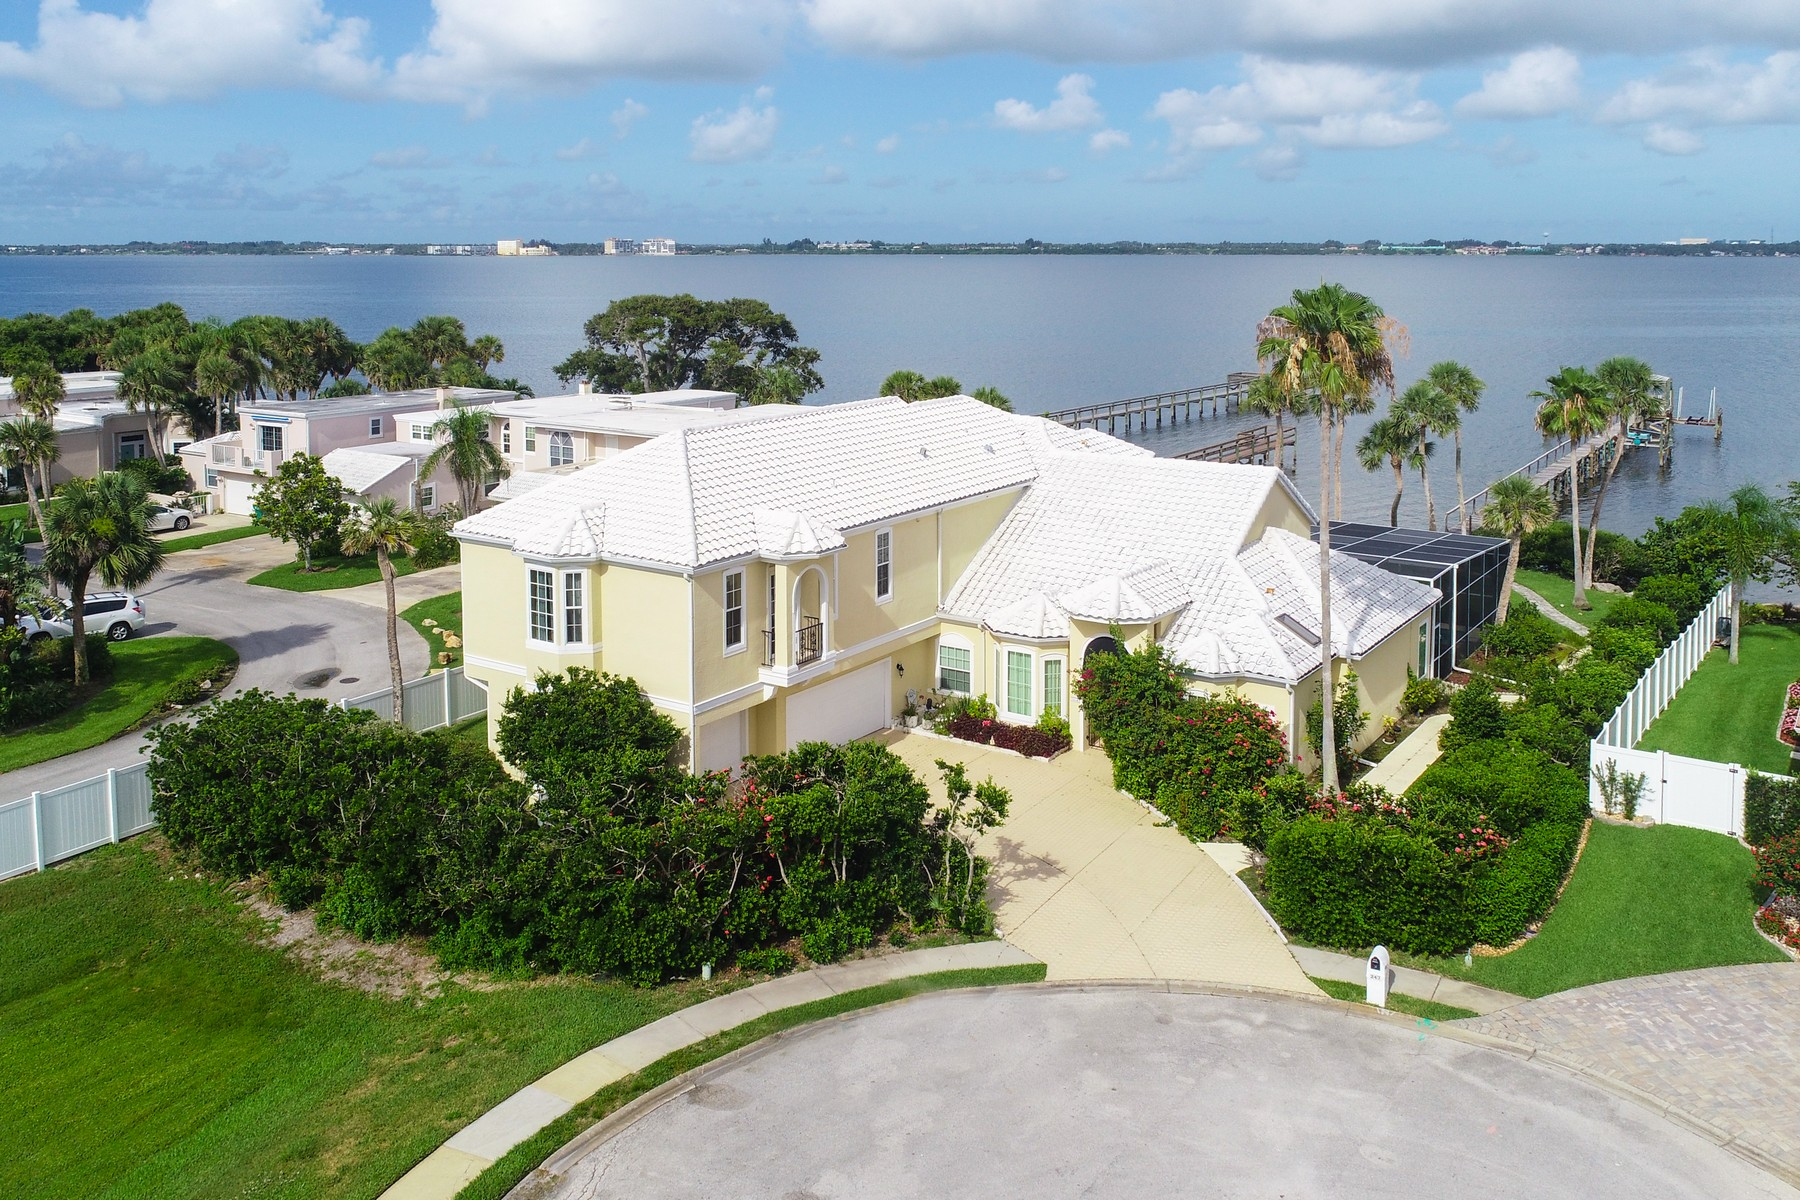 Single Family Home for Sale at Amazing Riverfront Home in Seabreeze 247 Seaview Street Melbourne, Florida 32951 United States